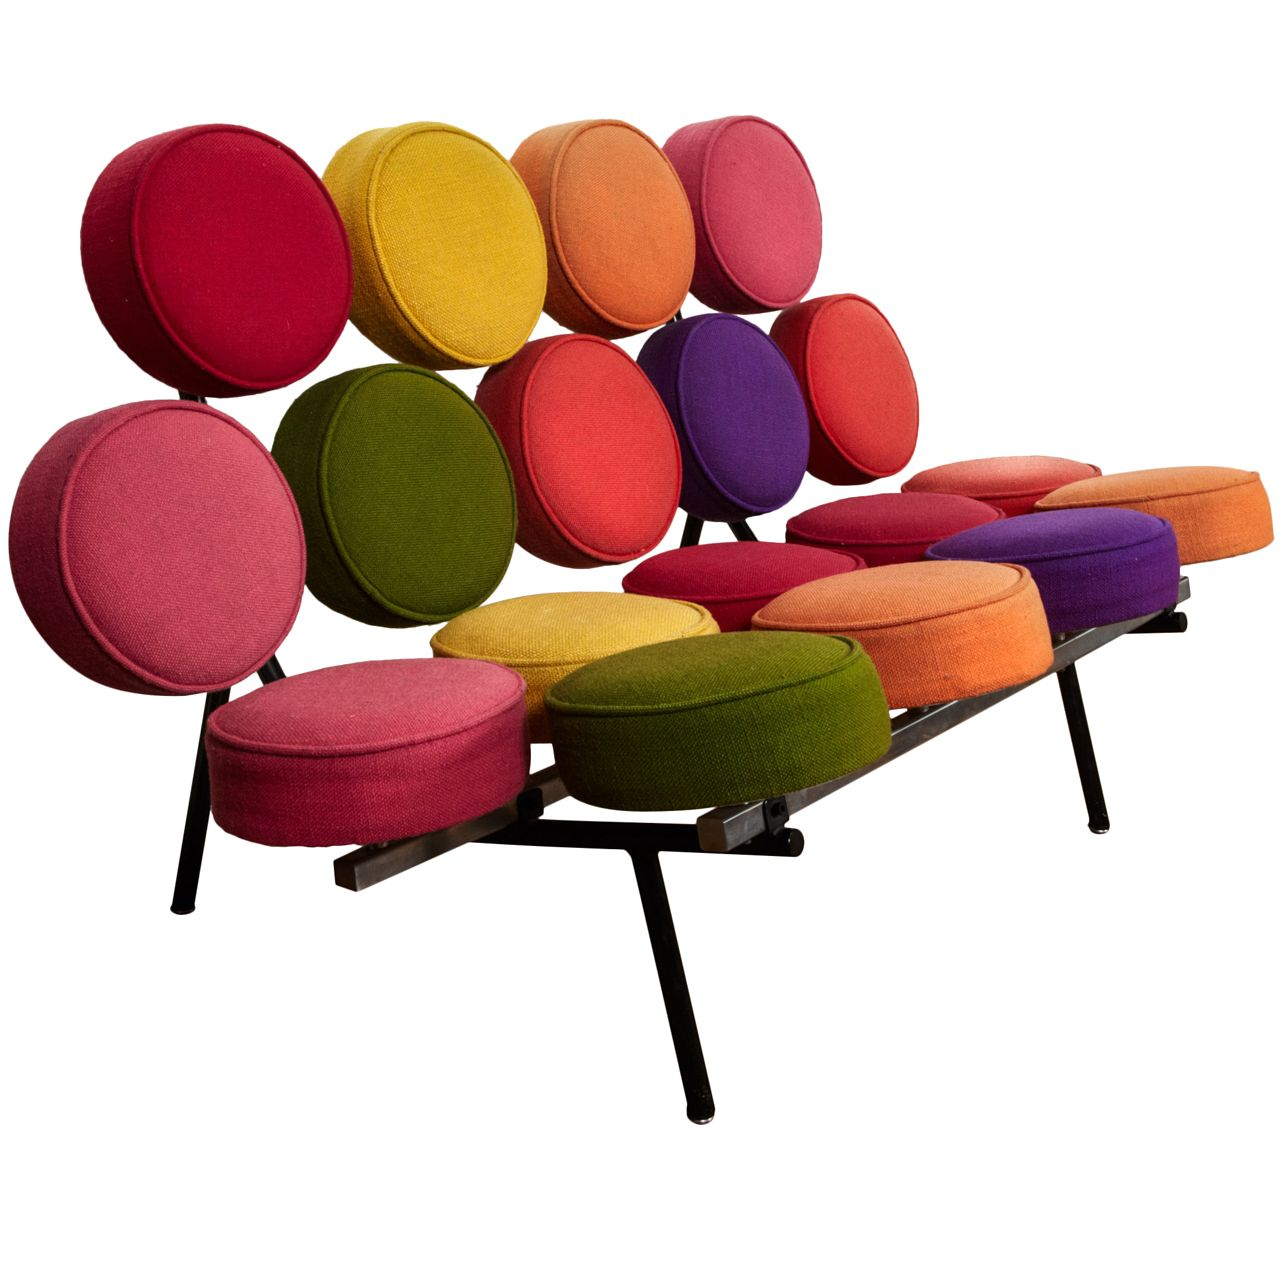 Marshmallow Sofa By George Nelson 1958 From A Unique